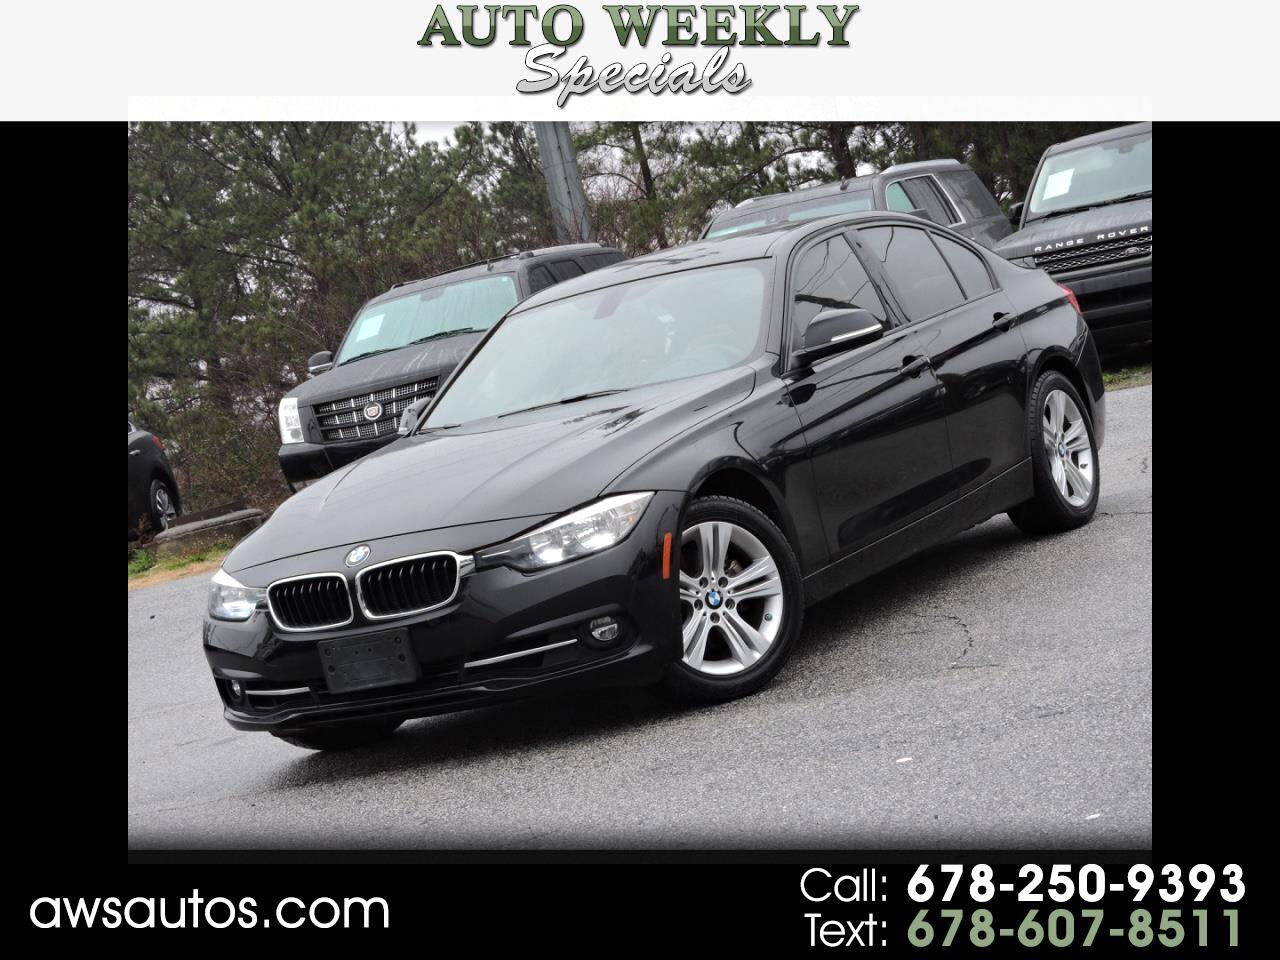 2016 BMW 3 Series 328i 4dr Sdn